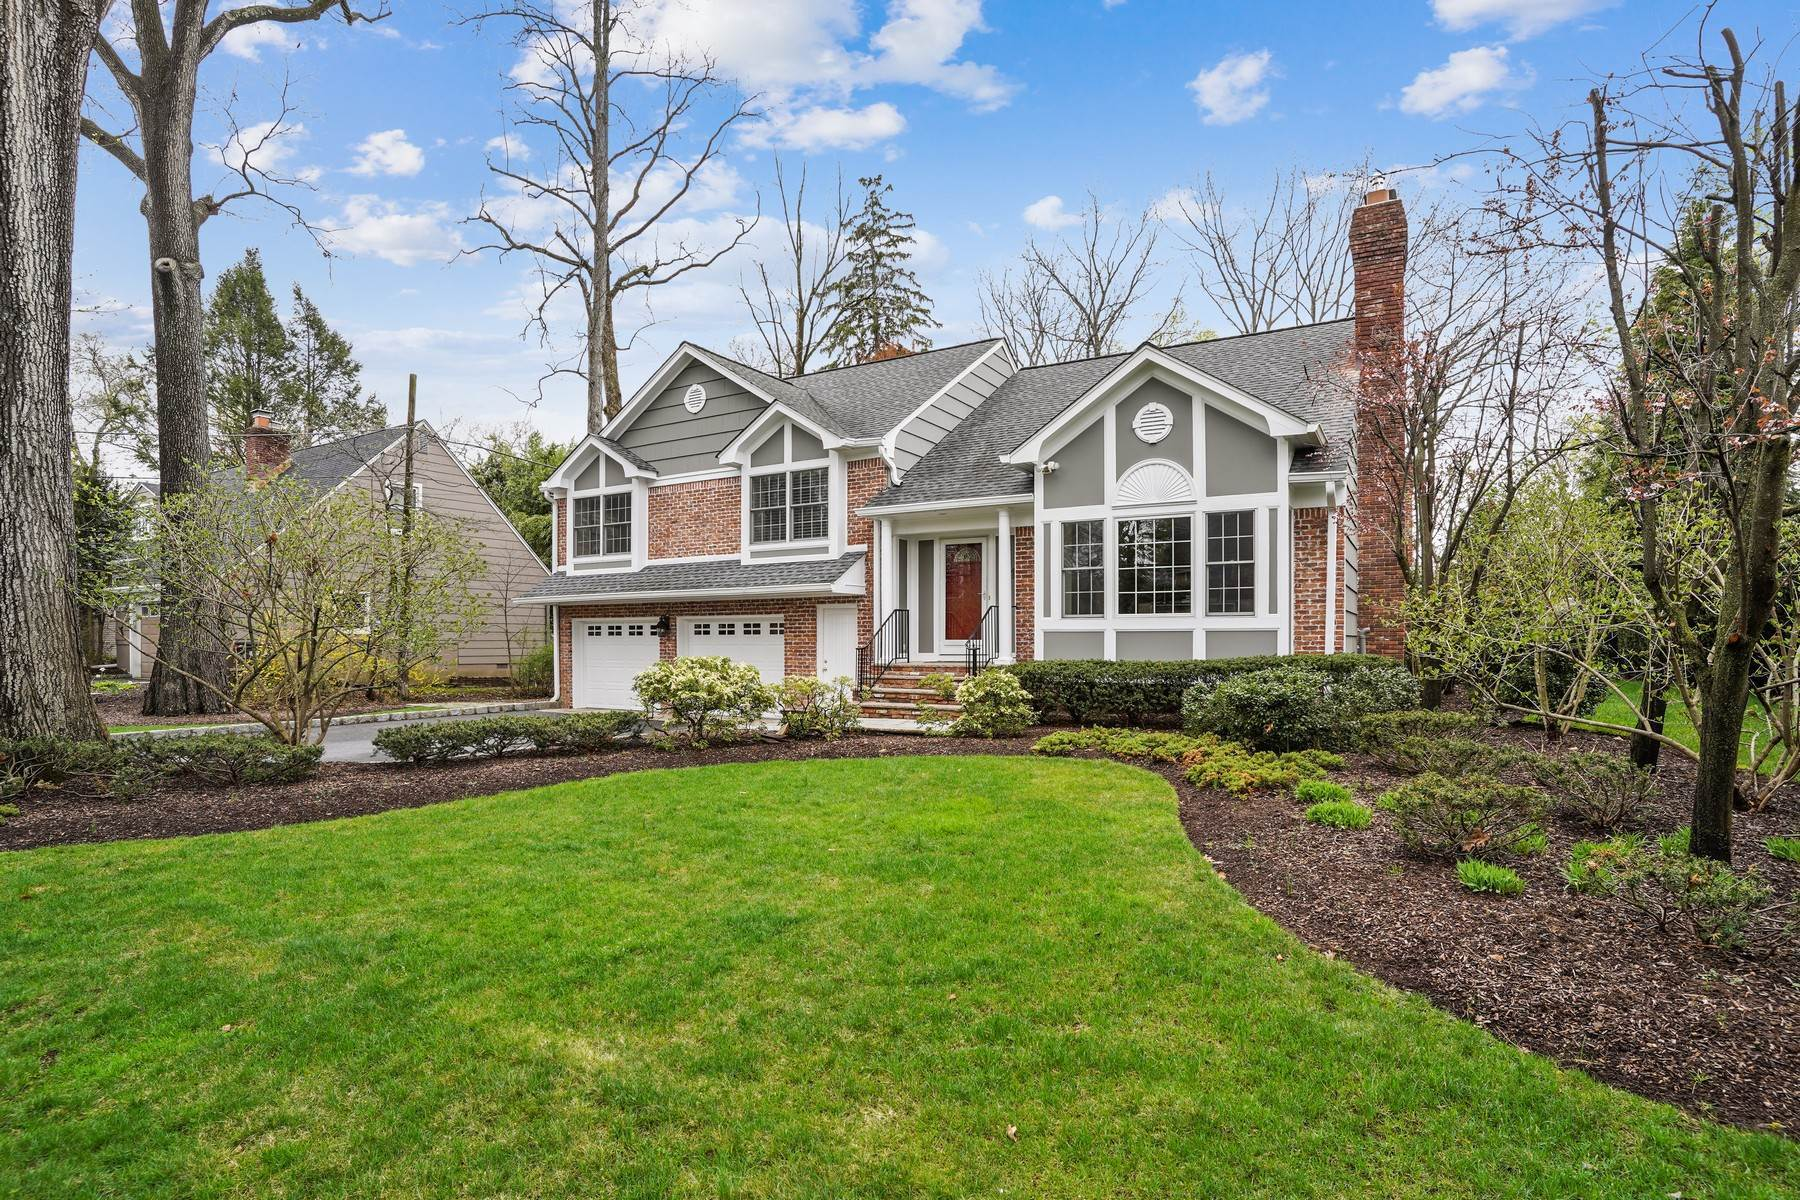 Single Family Homes for Sale at Perfect In Town Custom Home 94 Hobart Avenue Summit, New Jersey 07901 United States